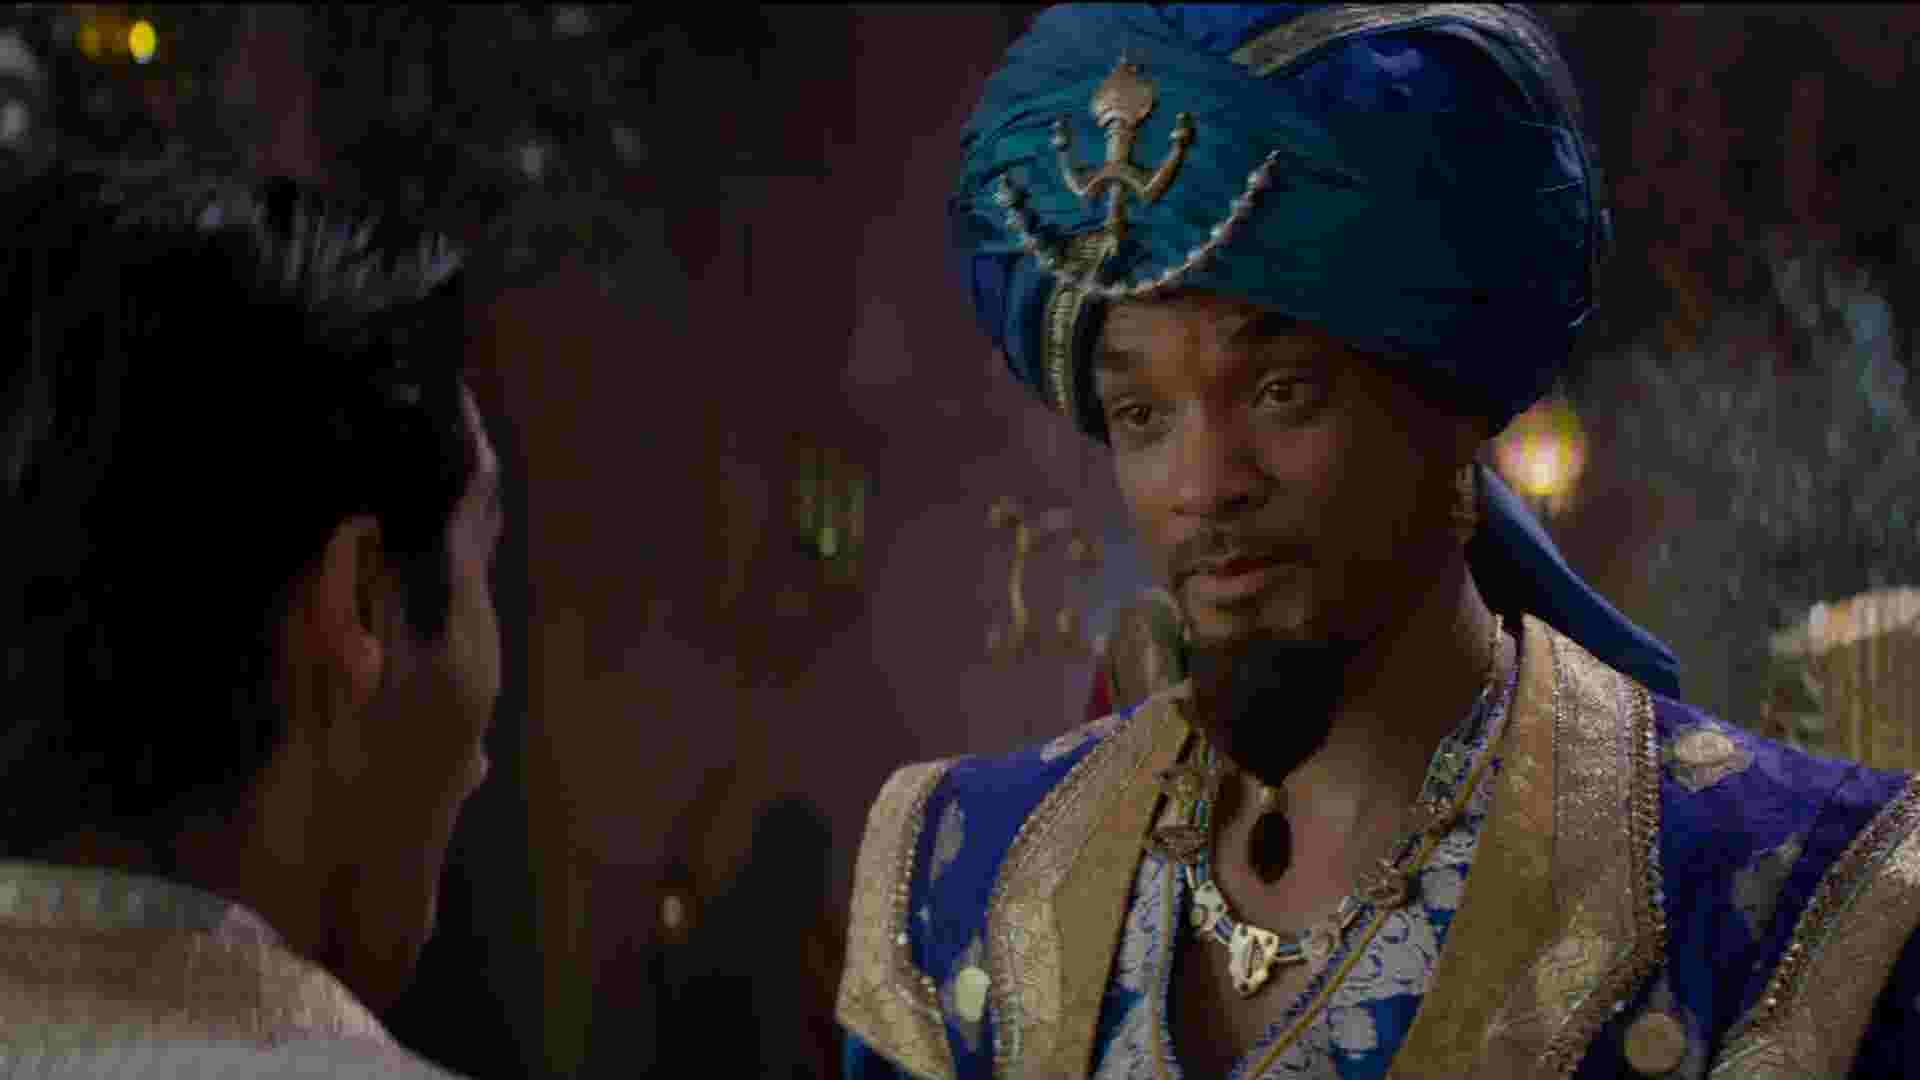 Aladdin New Trailer Gives Best Look Yet At Will Smith